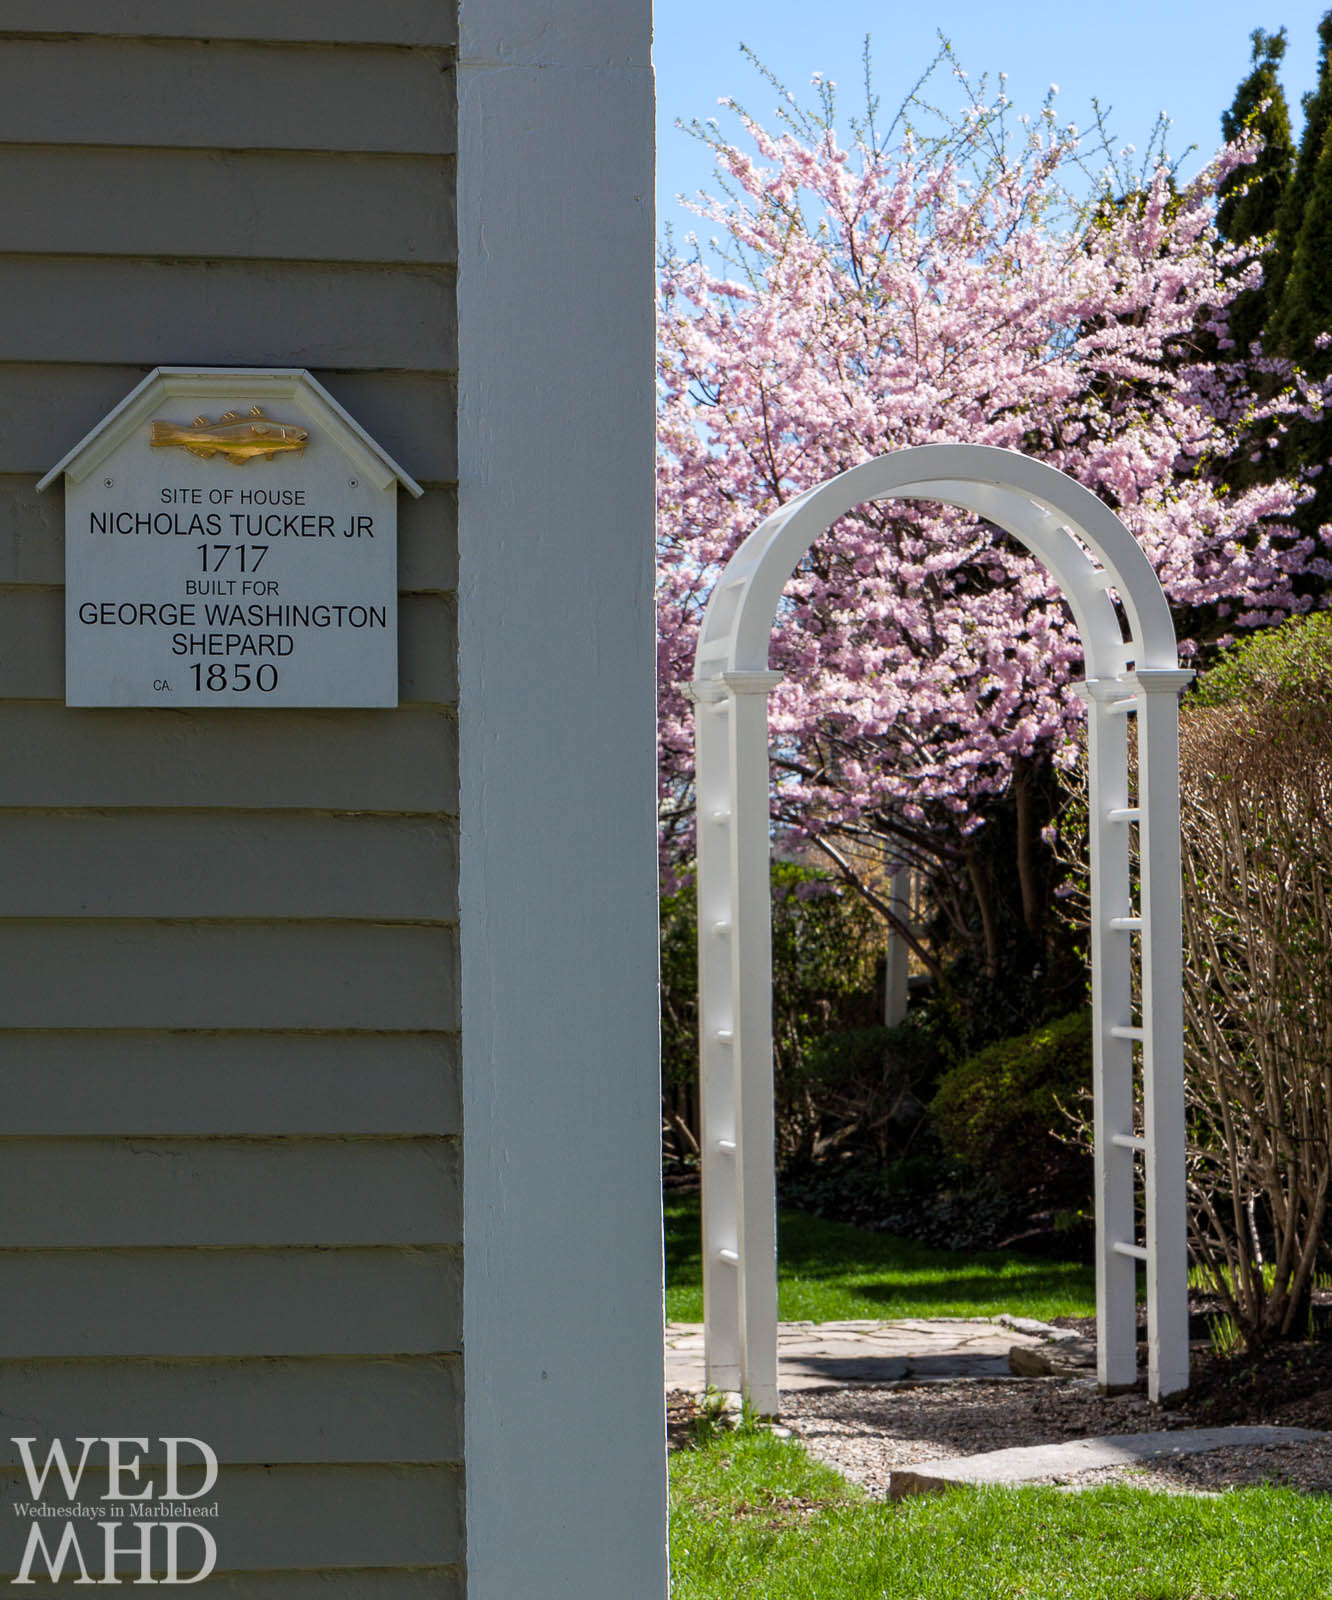 A house sign in Marblehead displays the golden cod as a cherry blossom reaches full bloom in the background